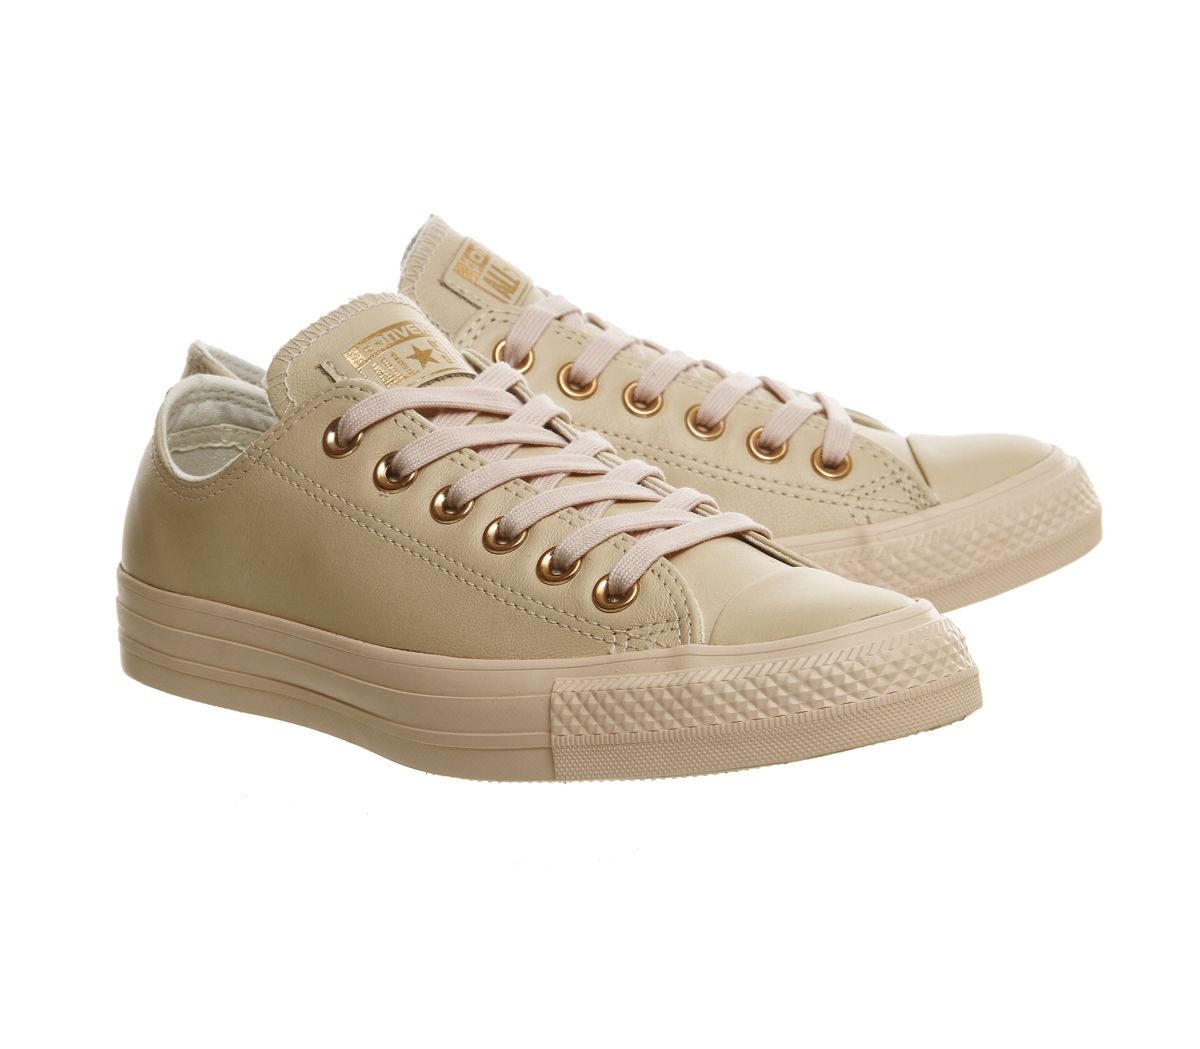 Converse All Star Low Leather Pastel Rose Tan Rose Gold - Hers trainers